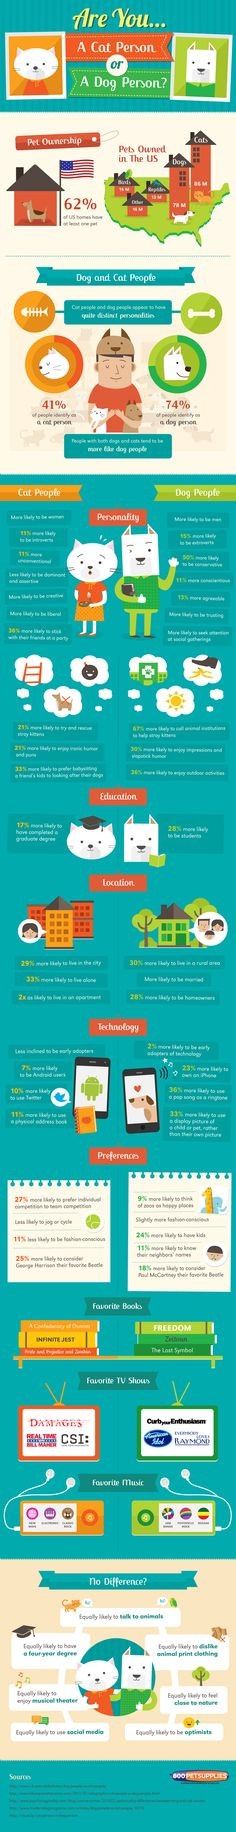 Are you a cat person or a dog person? [Infographic]